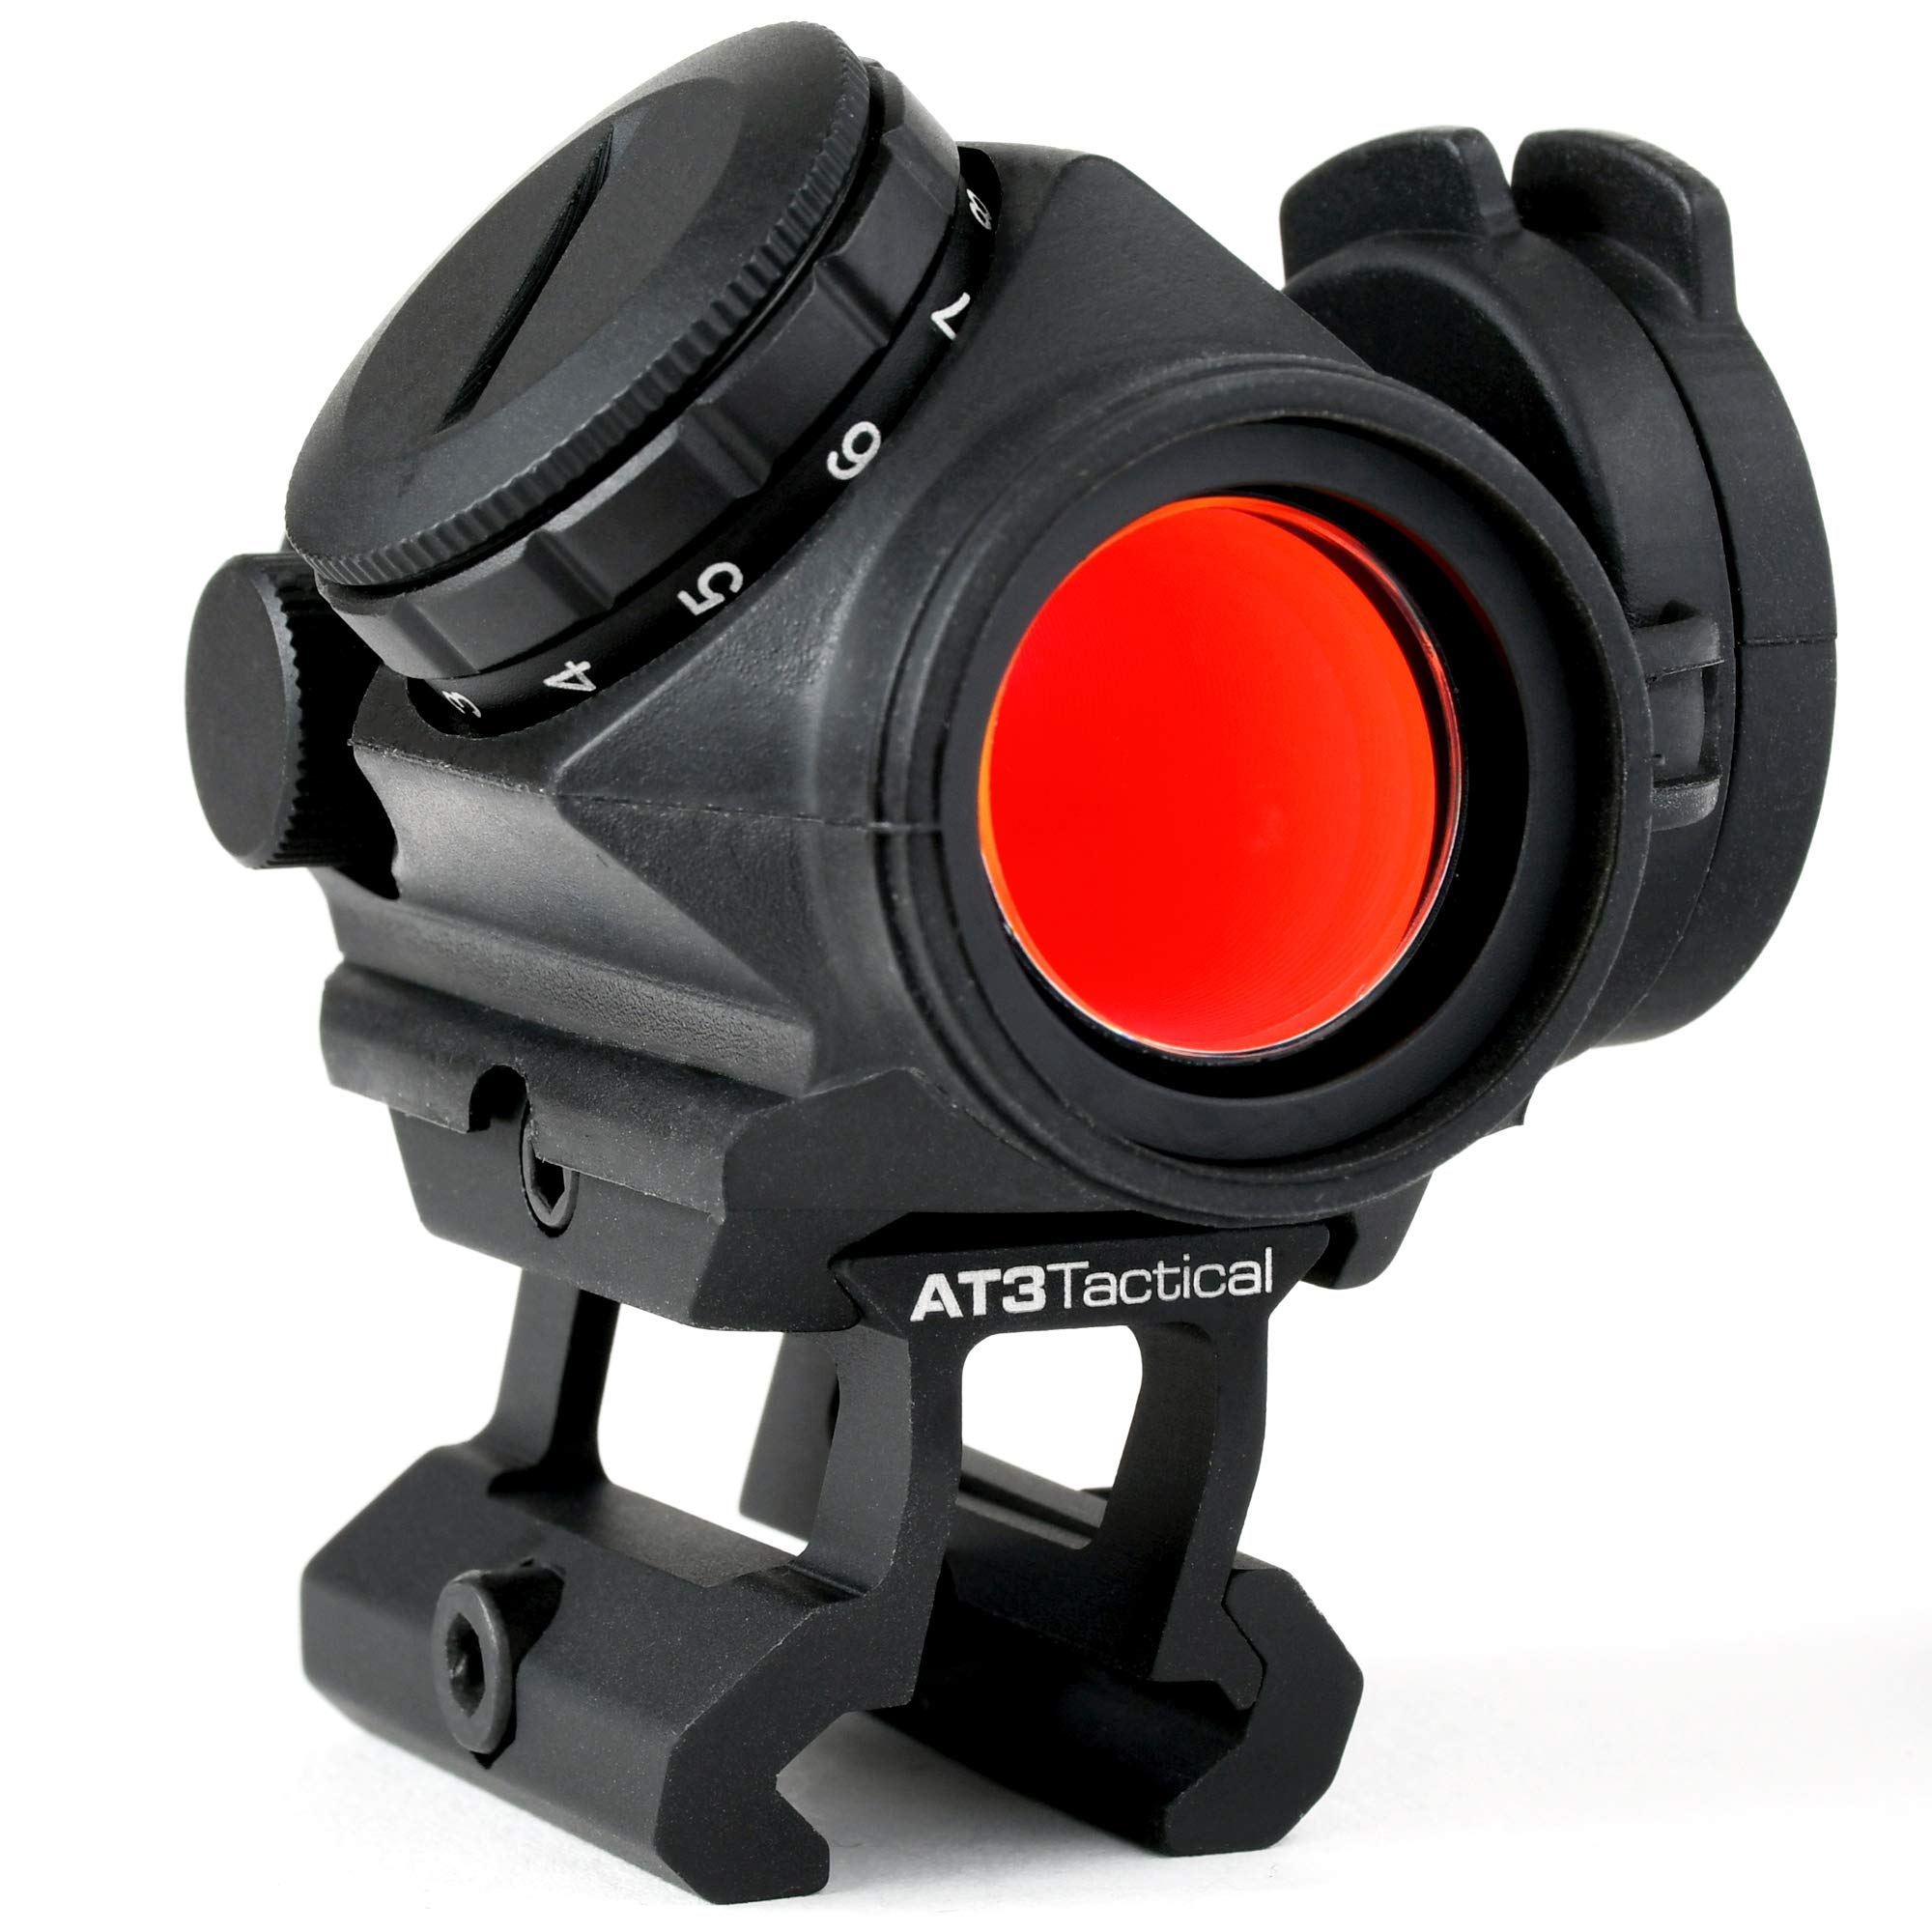 AT3 Tactical RD-50 Red Dot Sight with .83'' Riser - for Absolute Cowitness with Iron Sights - 2 MOA Compact Red Dot Scope by AT3 Tactical